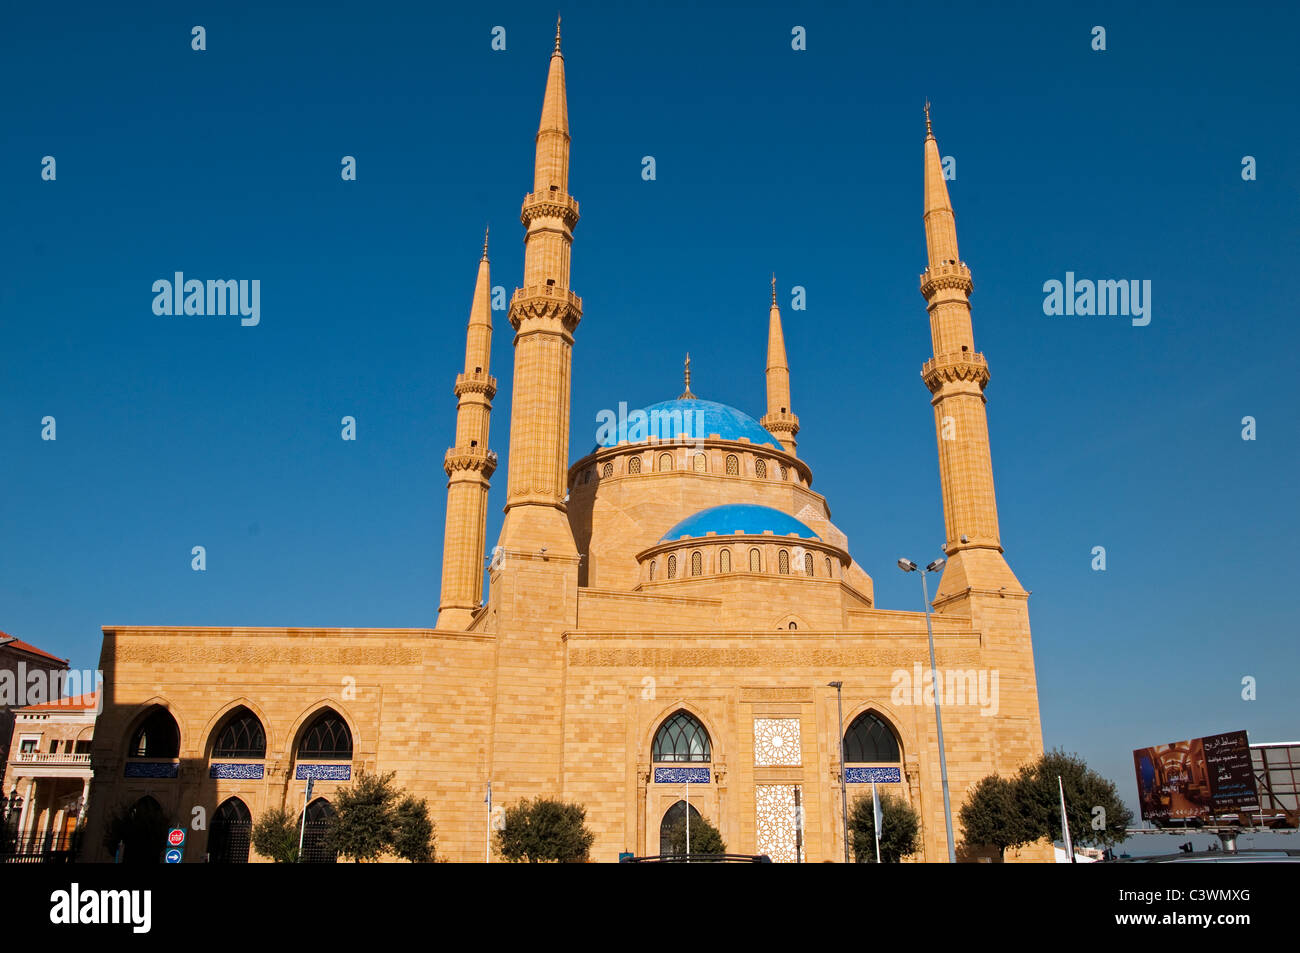 Mohammad Al-Amin Mosque Beyrouth Liban Photo Stock